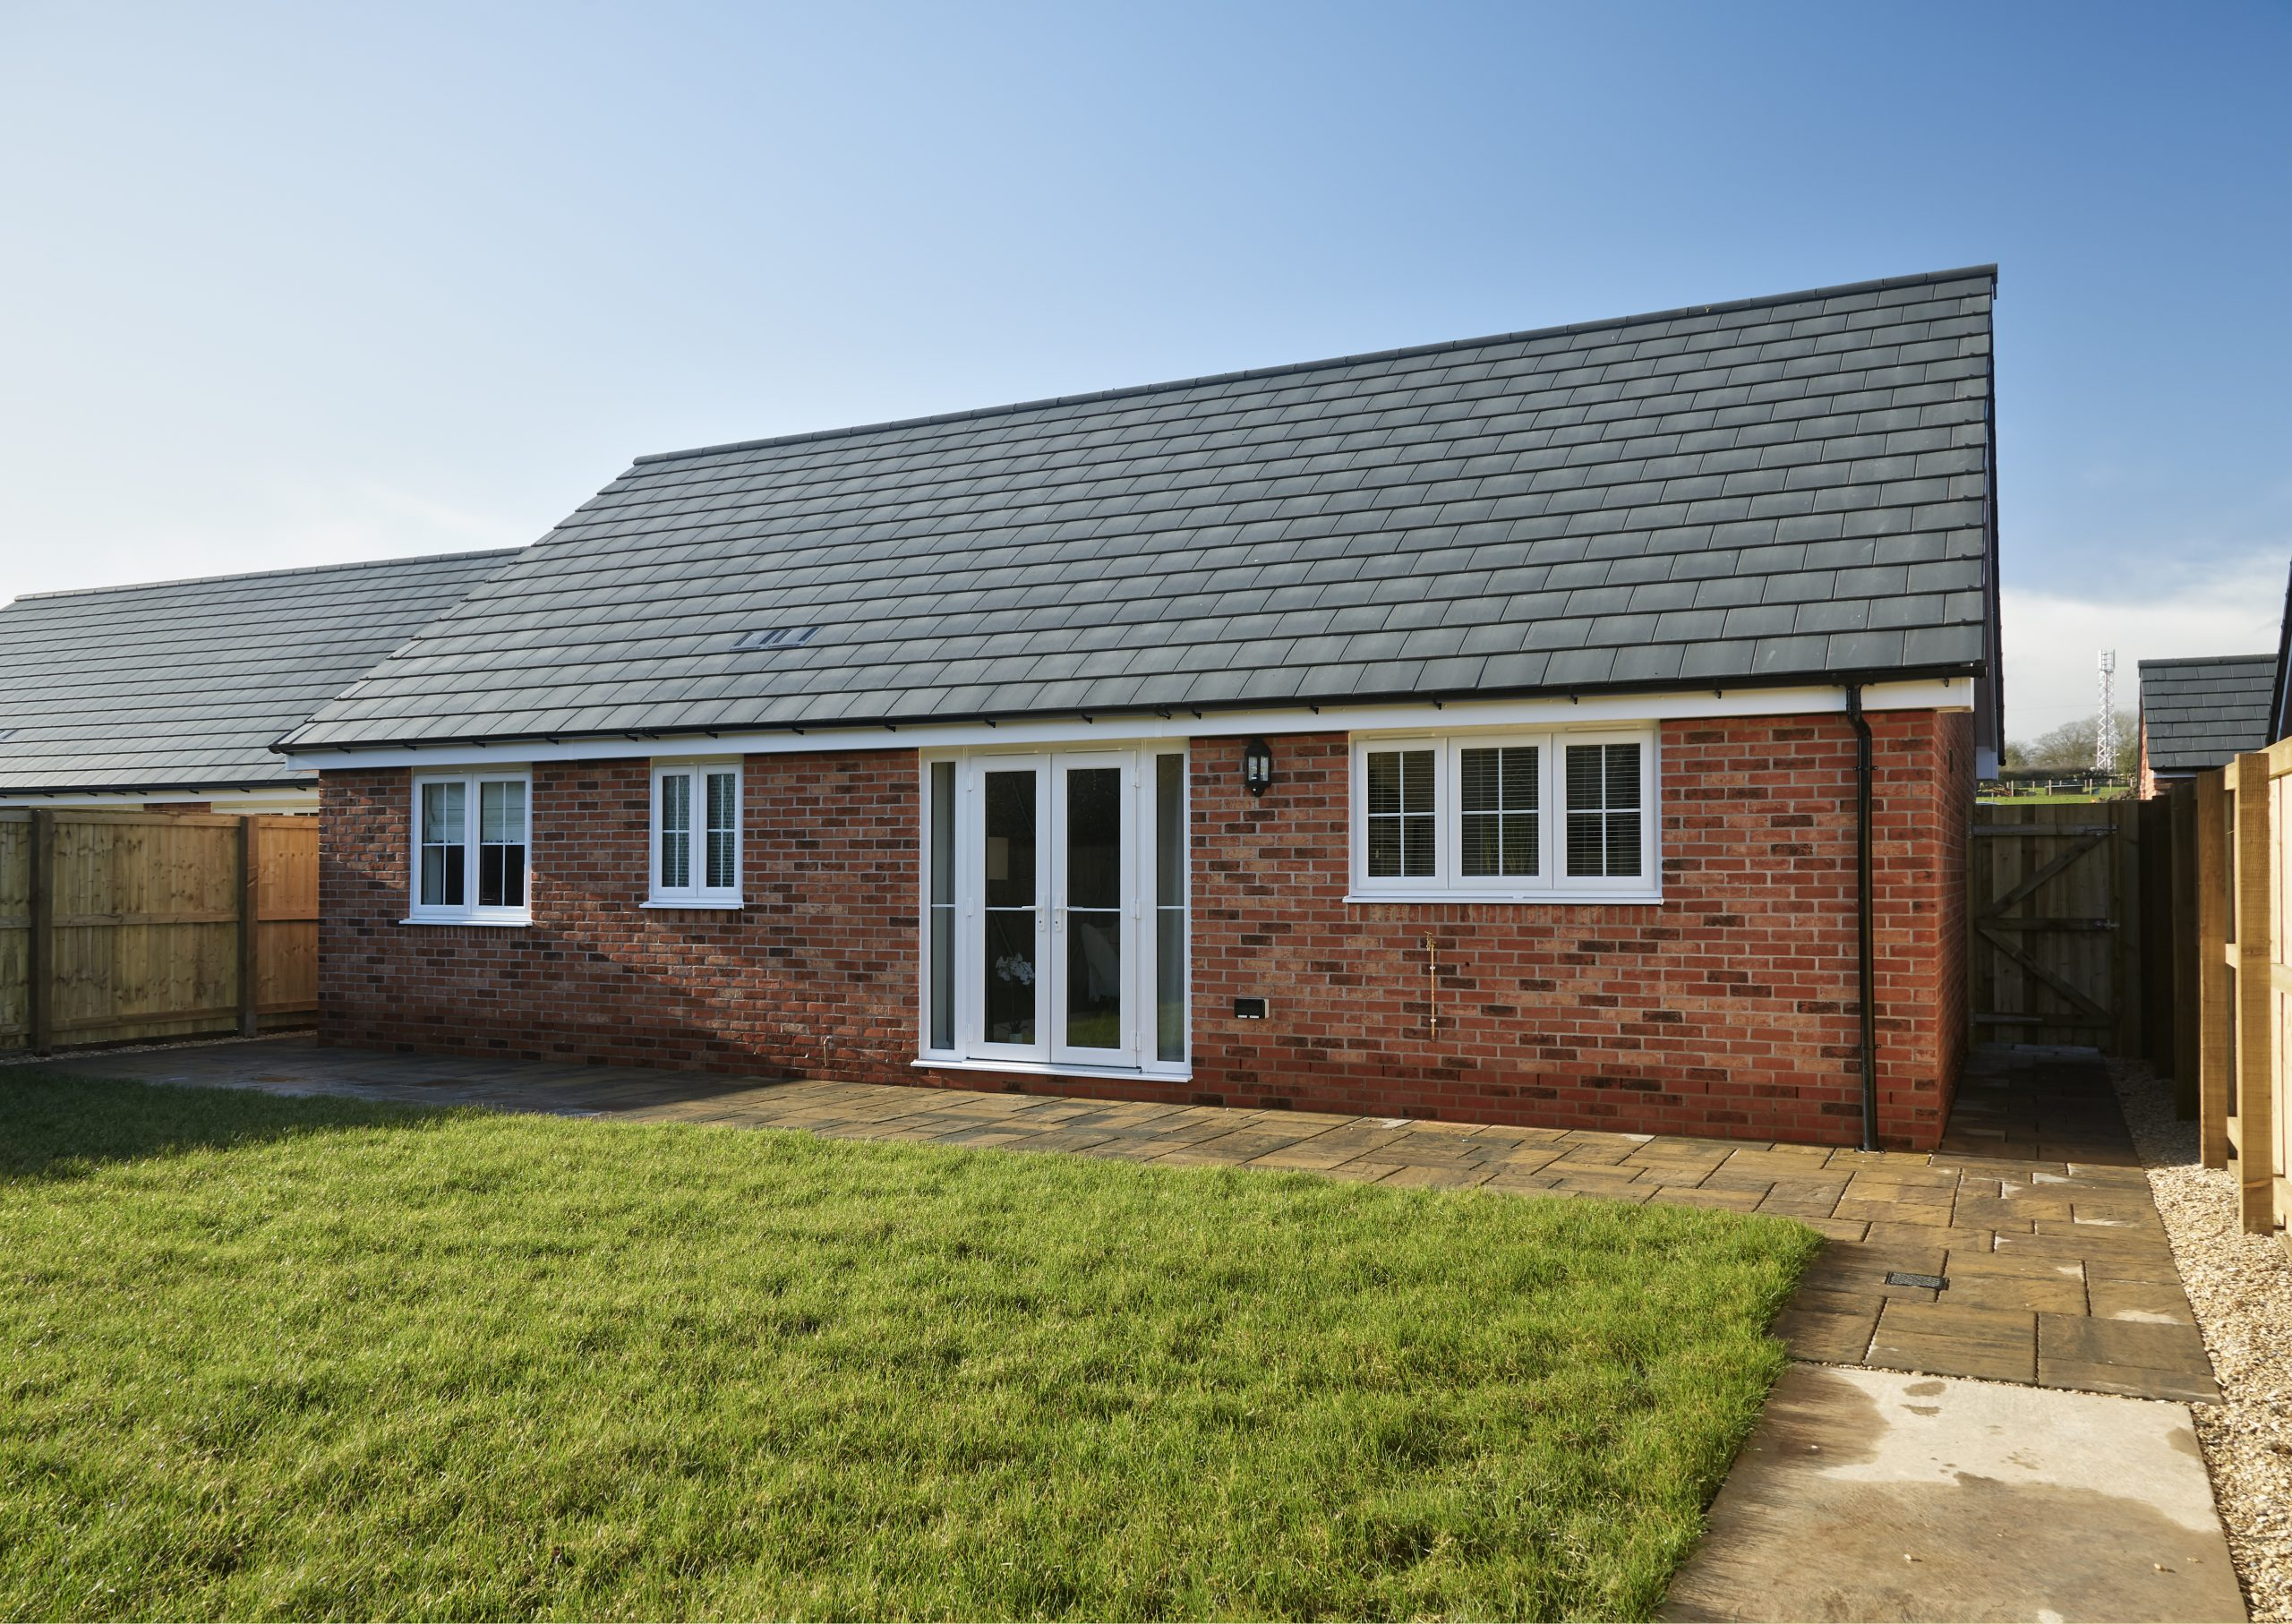 A residential development by MELT Property at Plough Meadow